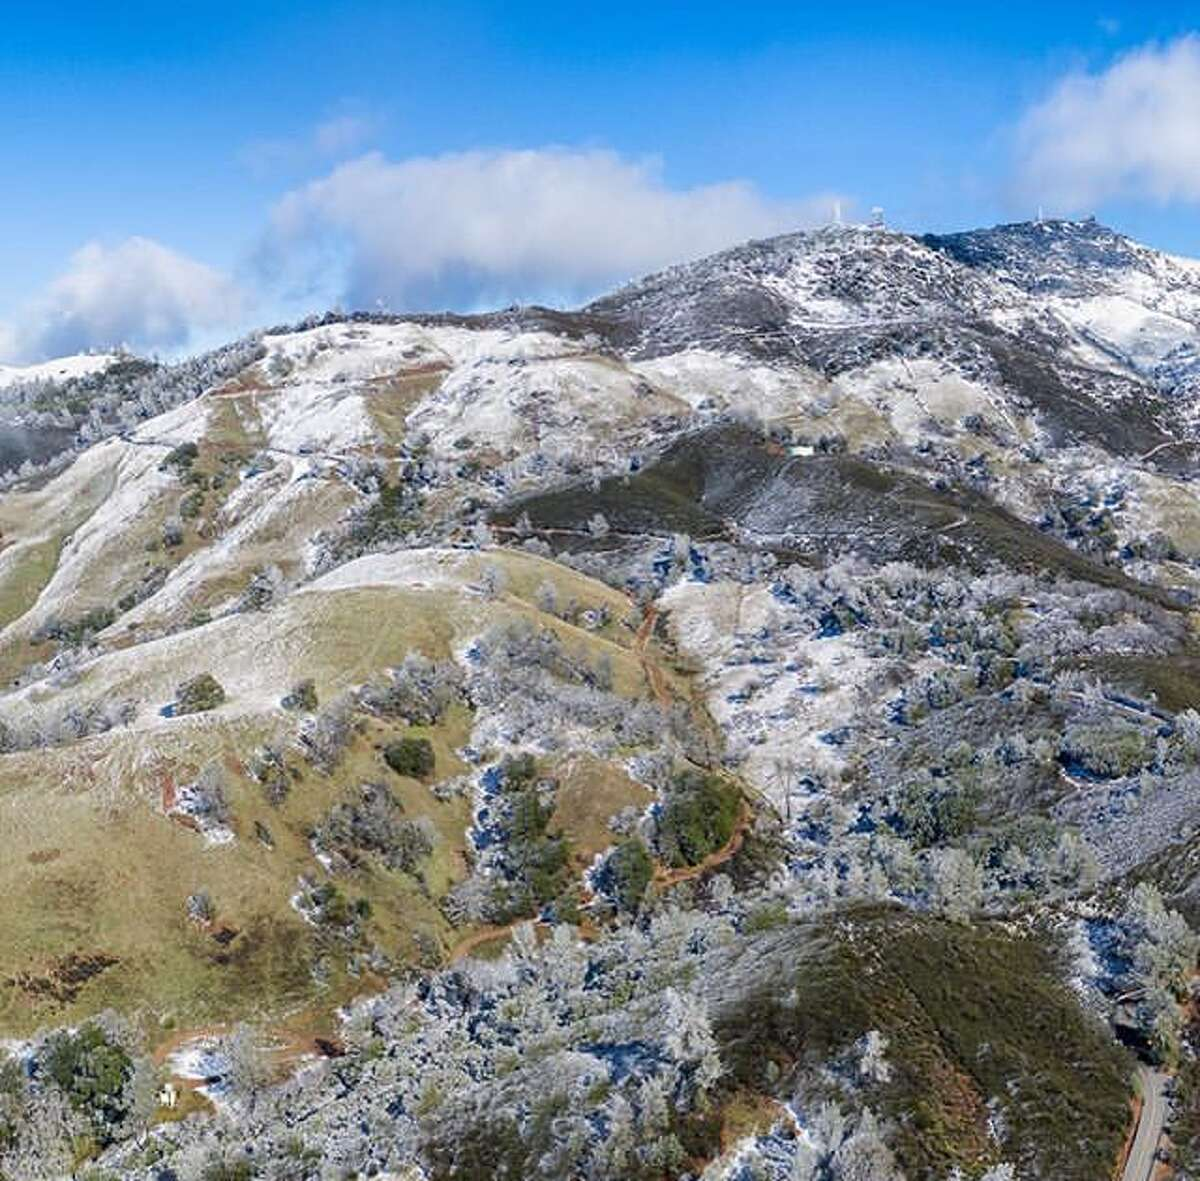 @fitzsimonsphotography photographed more snow on Mt. Diablo. Snow graced the peaks of the San Francisco Bay Area once again on Sunday, Feb. 10, 2019.